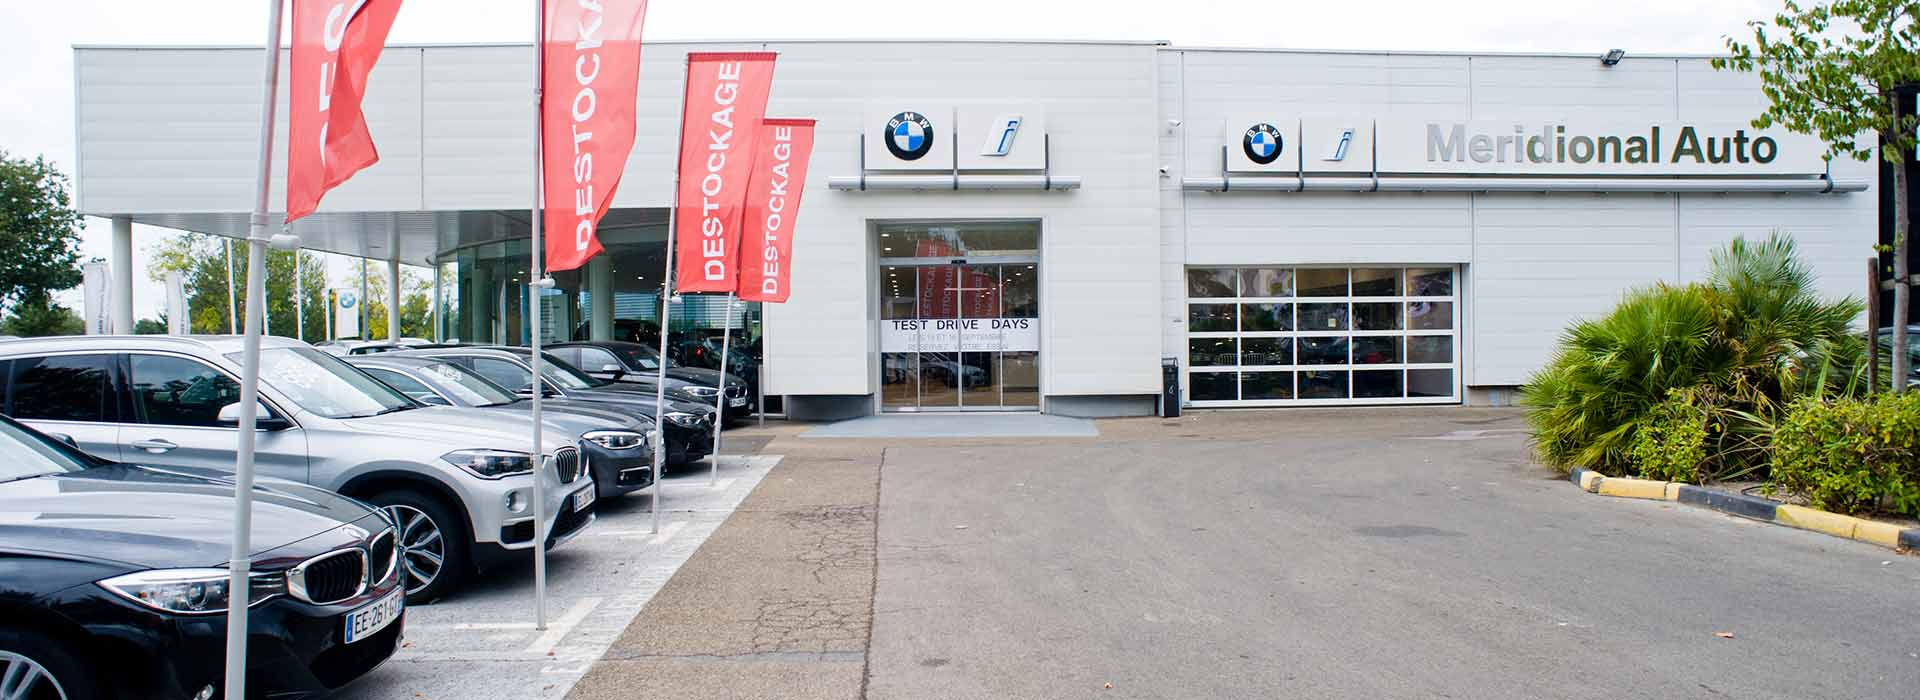 Bmw nimes concessionnaire garage gard 30 for Garage concessionnaire bmw